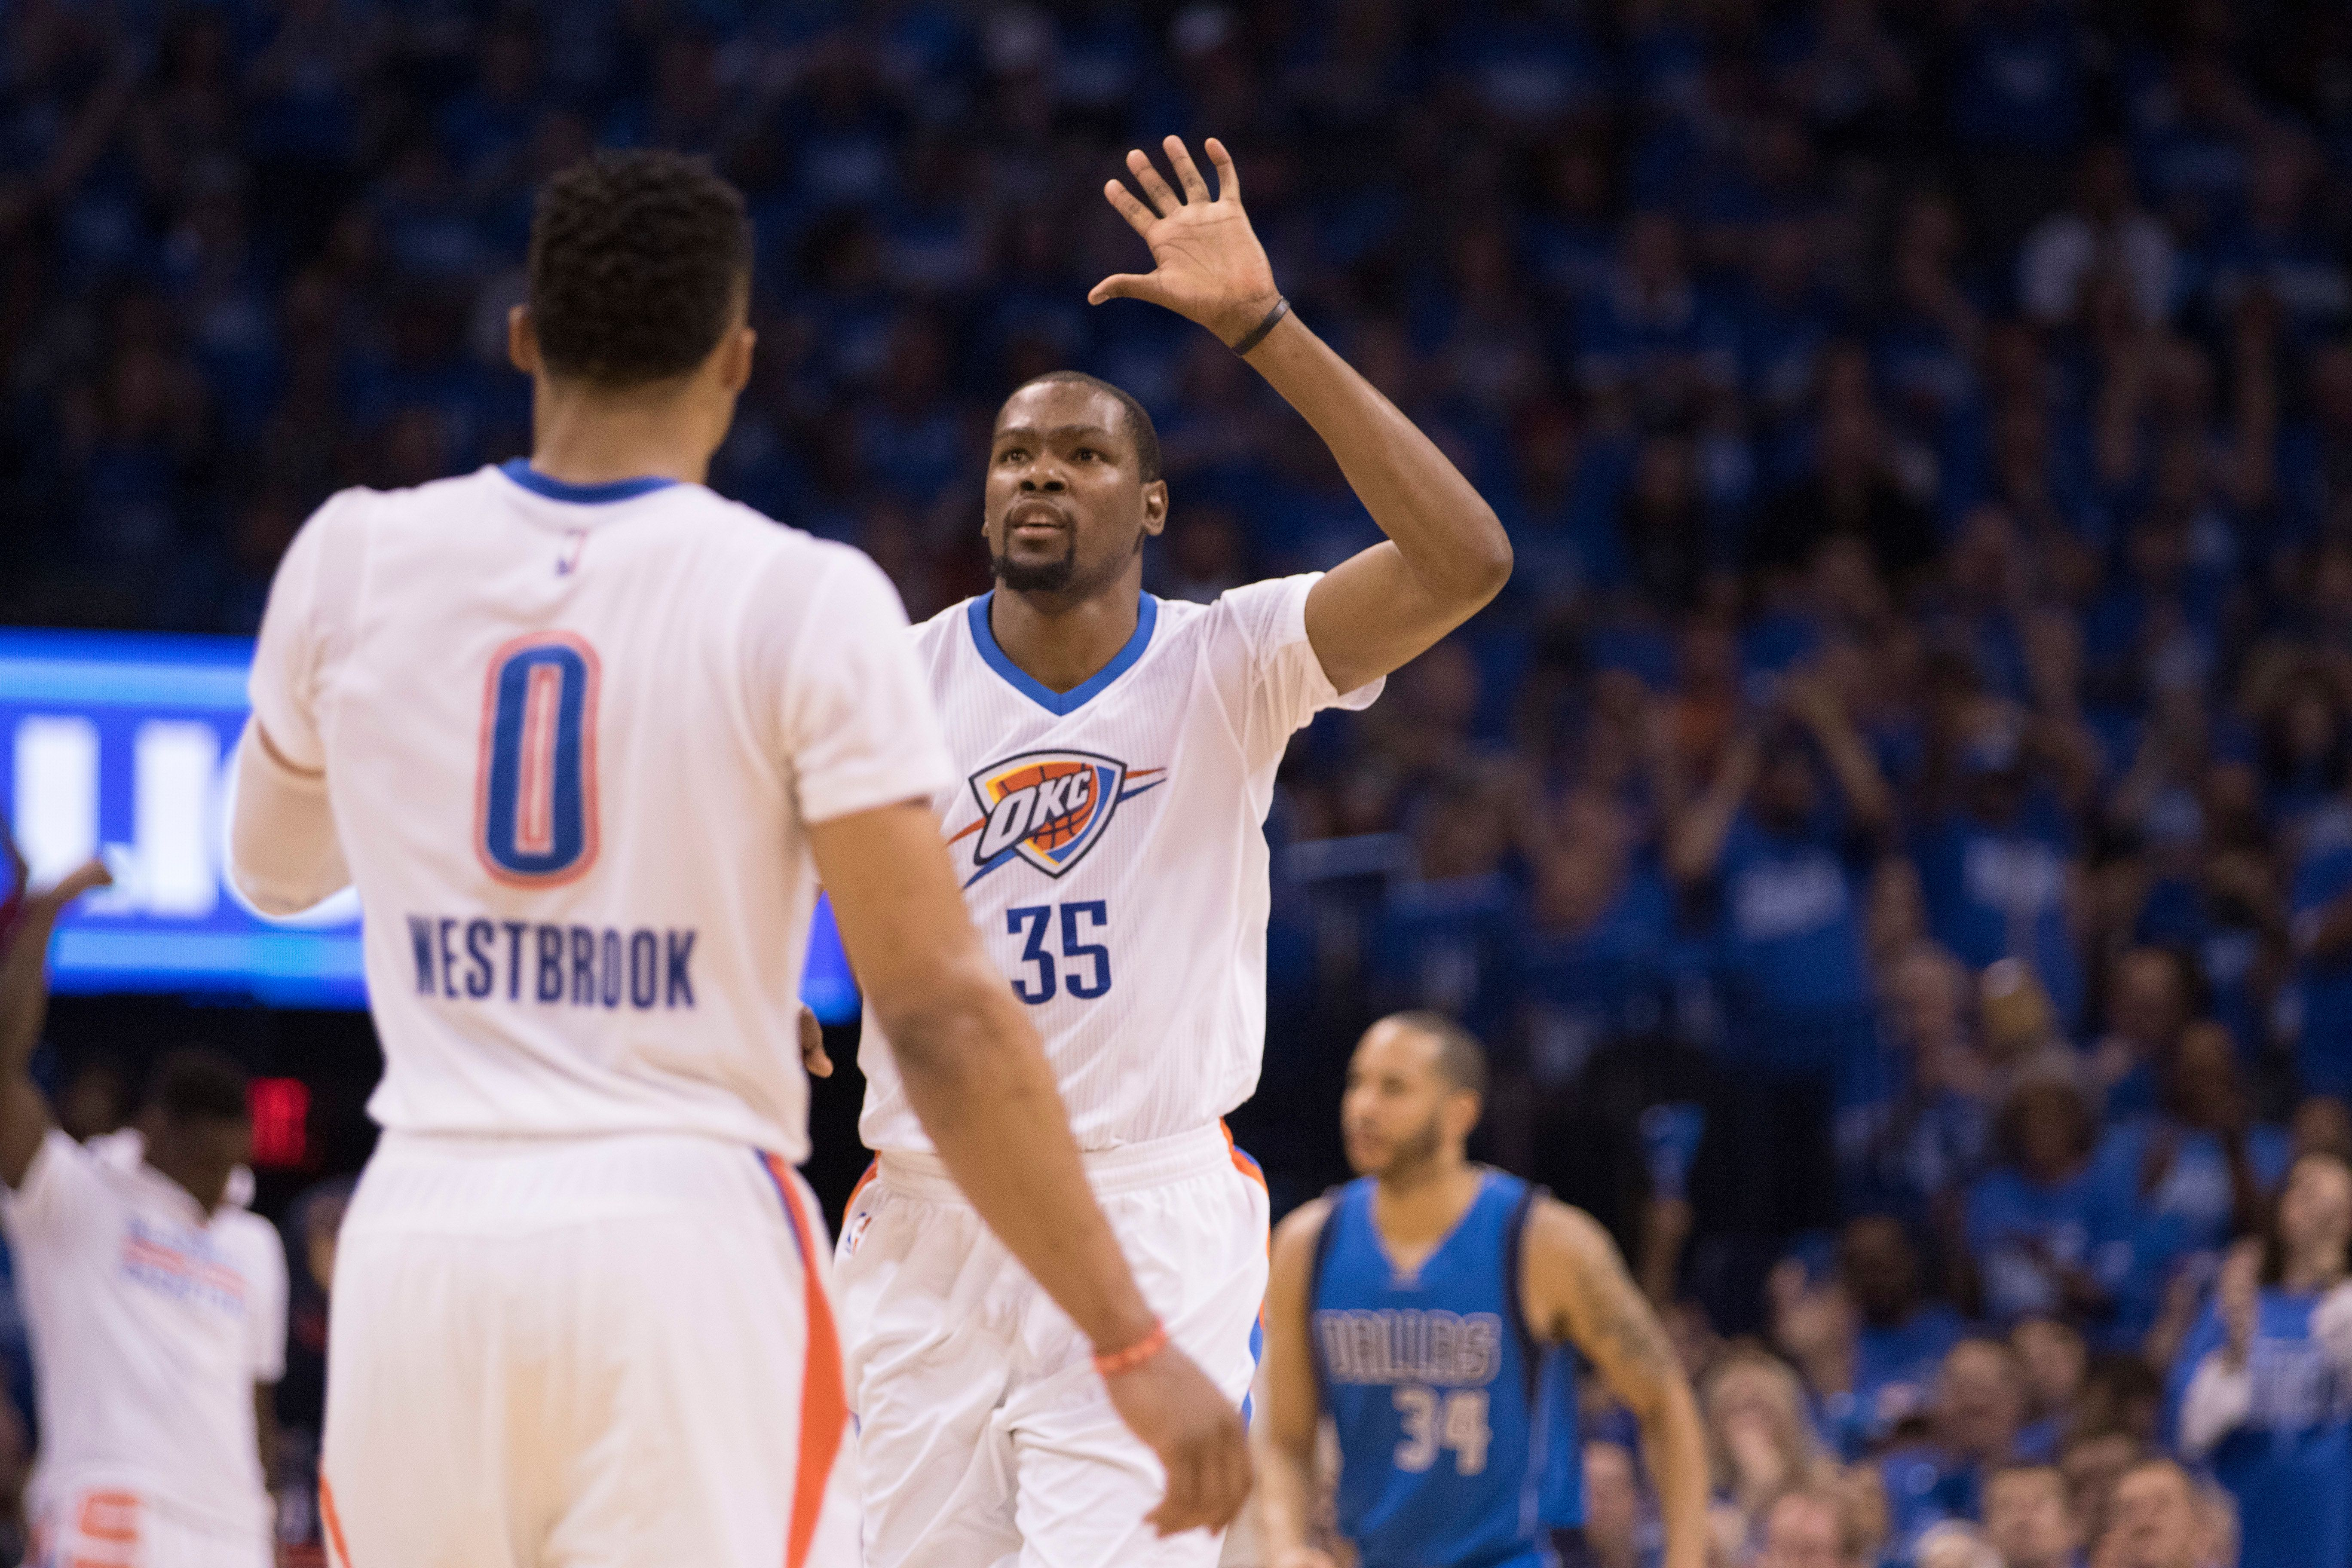 OKLAHOMA CITY, OK - APRIL 25: Kevin Durant #35 of the Oklahoma City Thunder and Russell Westbrook #0 of the Oklahoma City Thunder celebrate after defeating the Dallas Mavericks during Game Five of the Western Conference Quarterfinals during the 2016 NBA Playoffs at the Chesapeake Energy Arena on April 25, 2016 in Oklahoma City, Oklahoma.   NOTE TO USER: User expressly acknowledges and agrees that, by downloading and or using this photograph, User is consenting to the terms and conditions of the Getty Images License Agreement. (Photo by J Pat Carter/Getty Images)